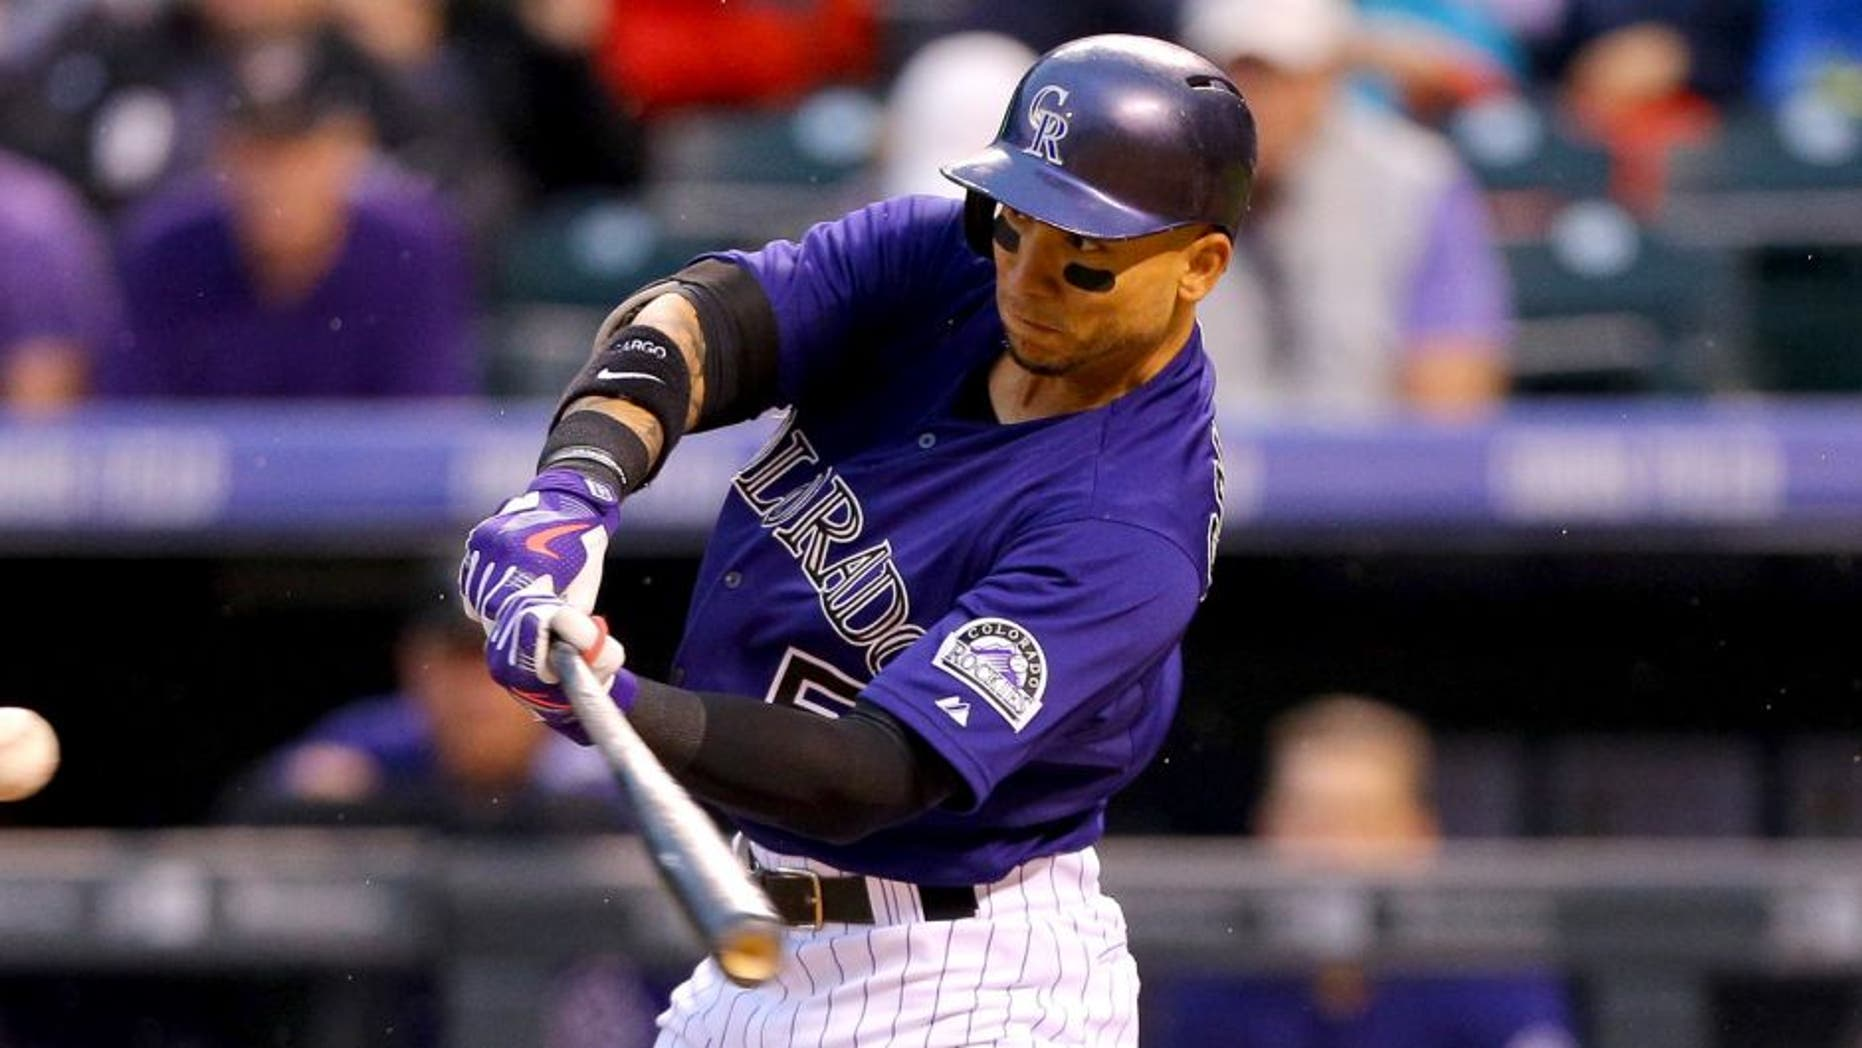 DENVER, CO - AUGUST 18: Carlos Gonzalez #5 of the Colorado Rockies hits a two run home run off of Jordan Zimmermann of the Washington Nationals during the first inning at Coors Field on August 18, 2015 in Denver, Colorado. (Photo by Justin Edmonds/Getty Images)